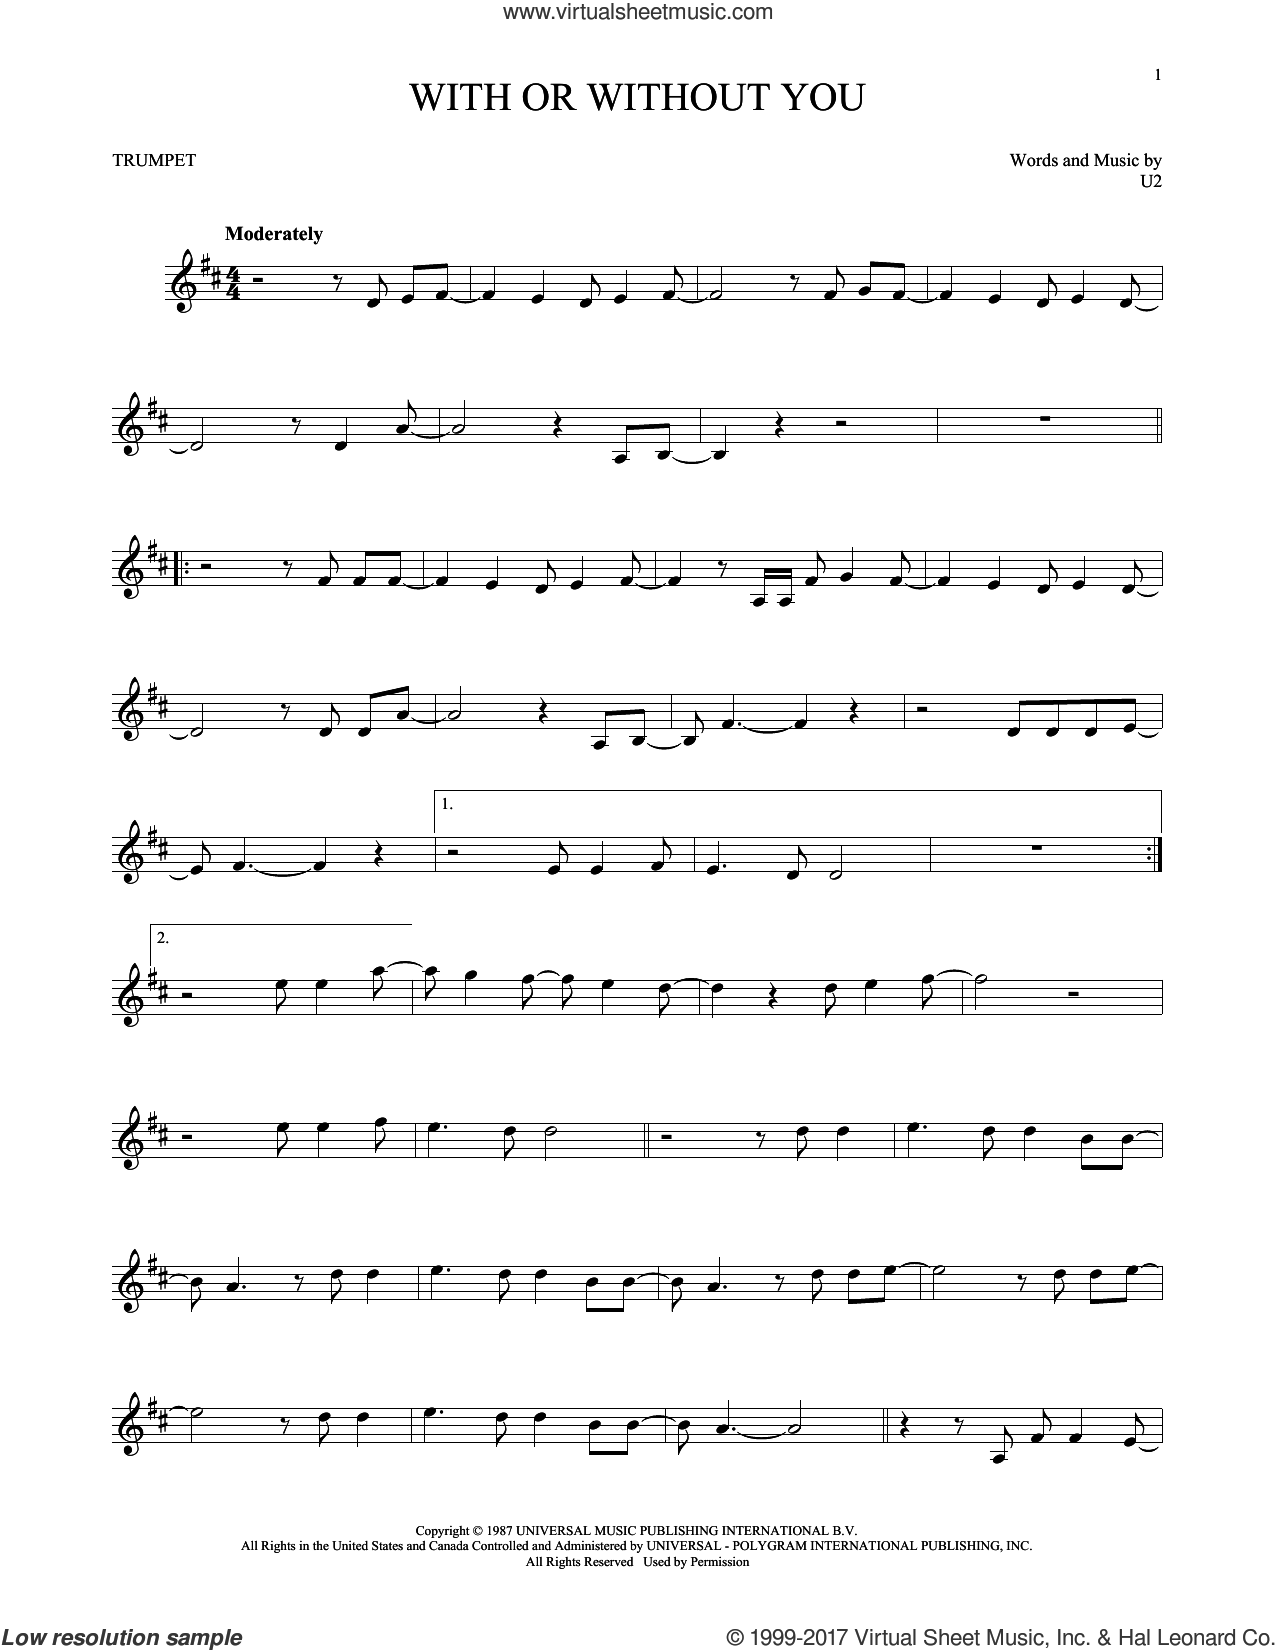 With Or Without You sheet music for trumpet solo by U2, intermediate